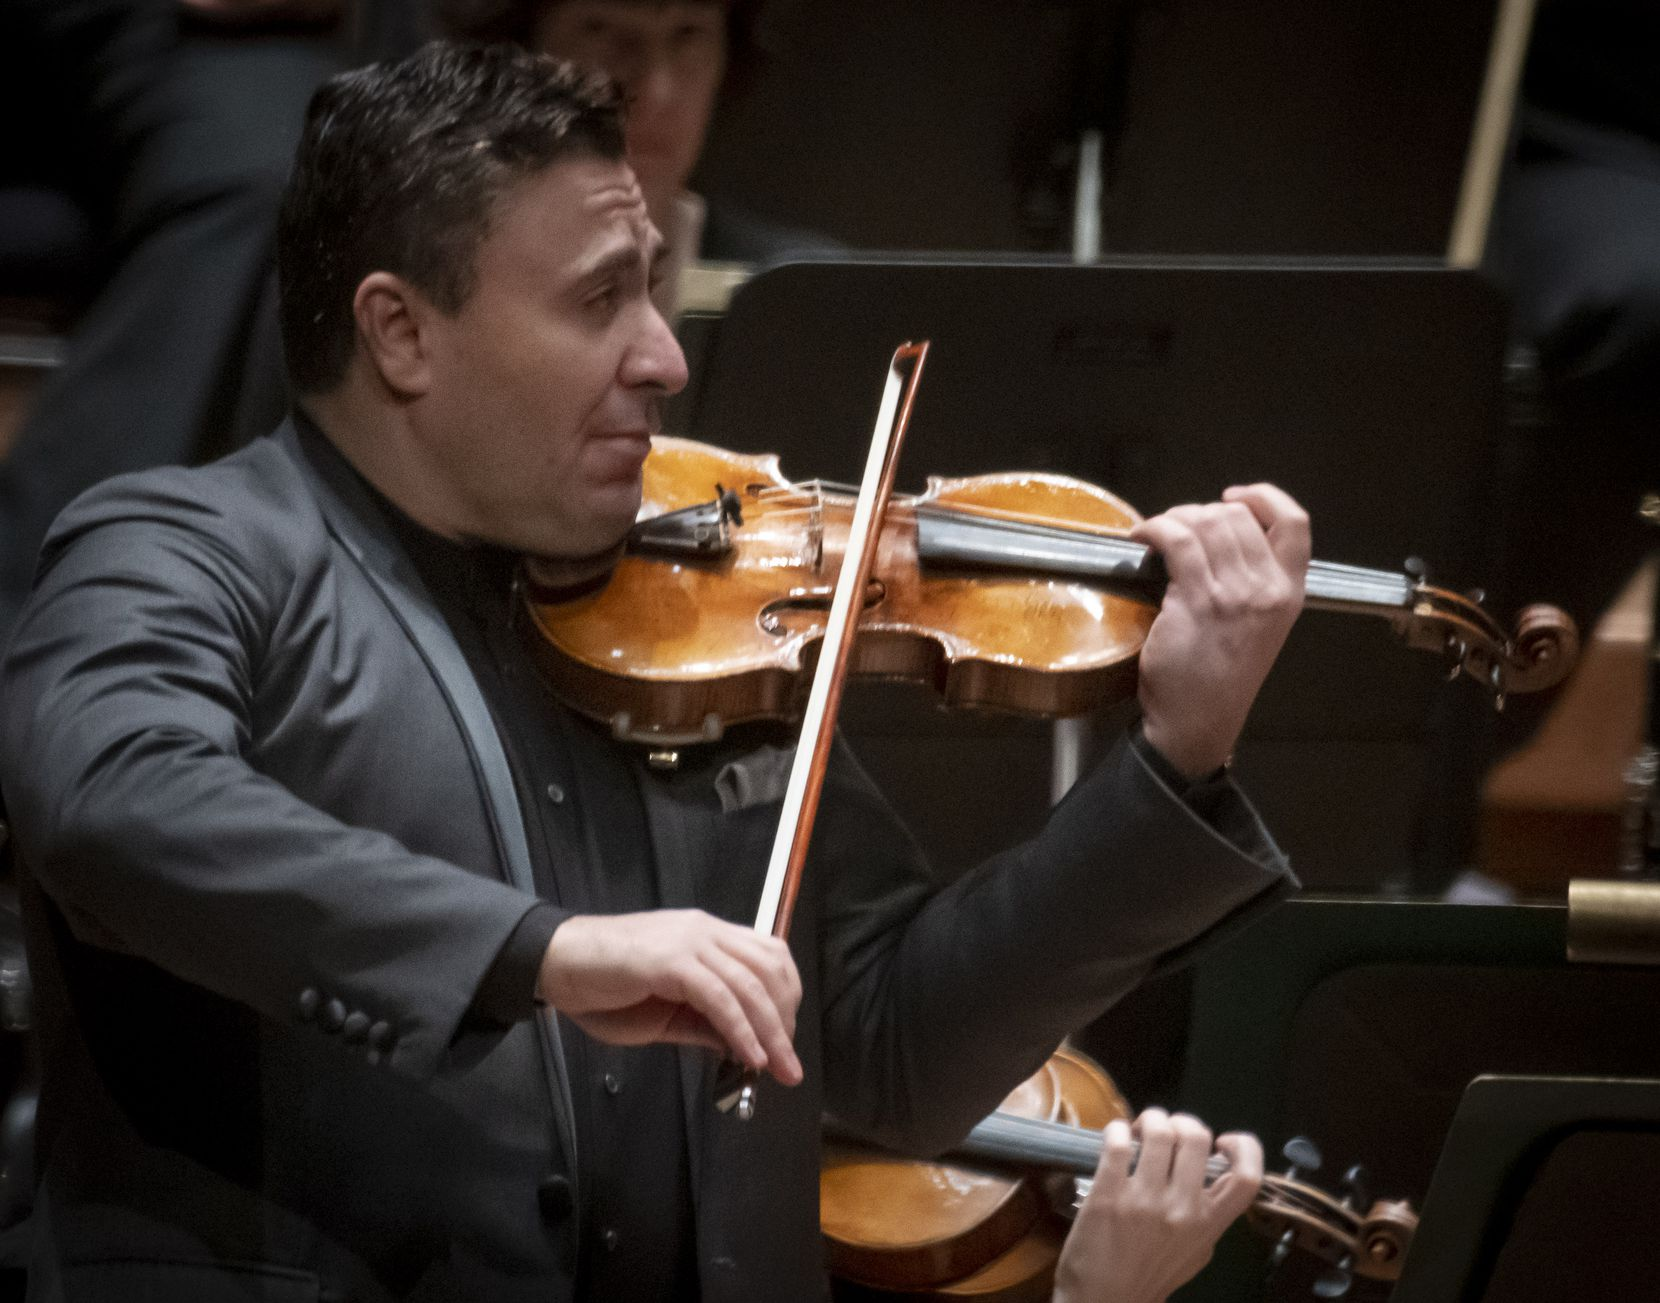 Violinist Maxim Vengerov coaxed finely focused and polished sounds from his ex-Kreutzer Stradivarius, a legendary instrument that dates to the early 1700s.